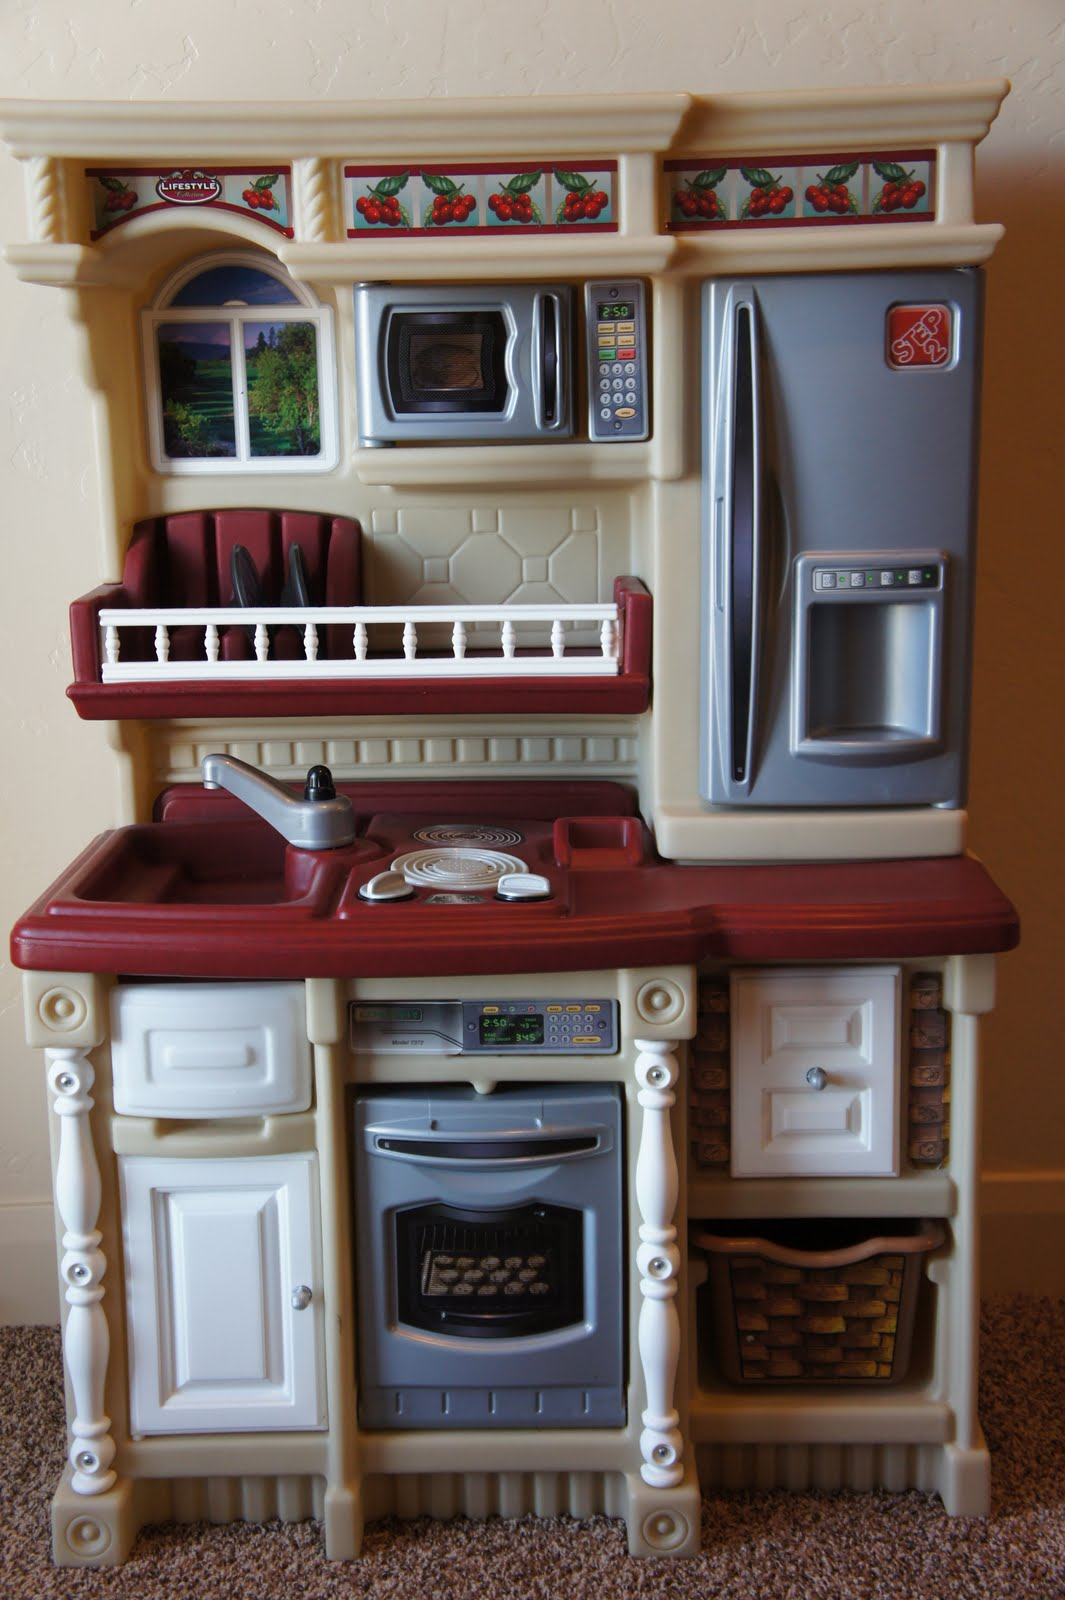 Kids Step 2 Lifestyle Custom Kitchen With Accessory And Food Set. Asking  $45.00 SOLD Http://www.walmart.com/ip/Step2 Lifestyle Custom Kitchen/5903083